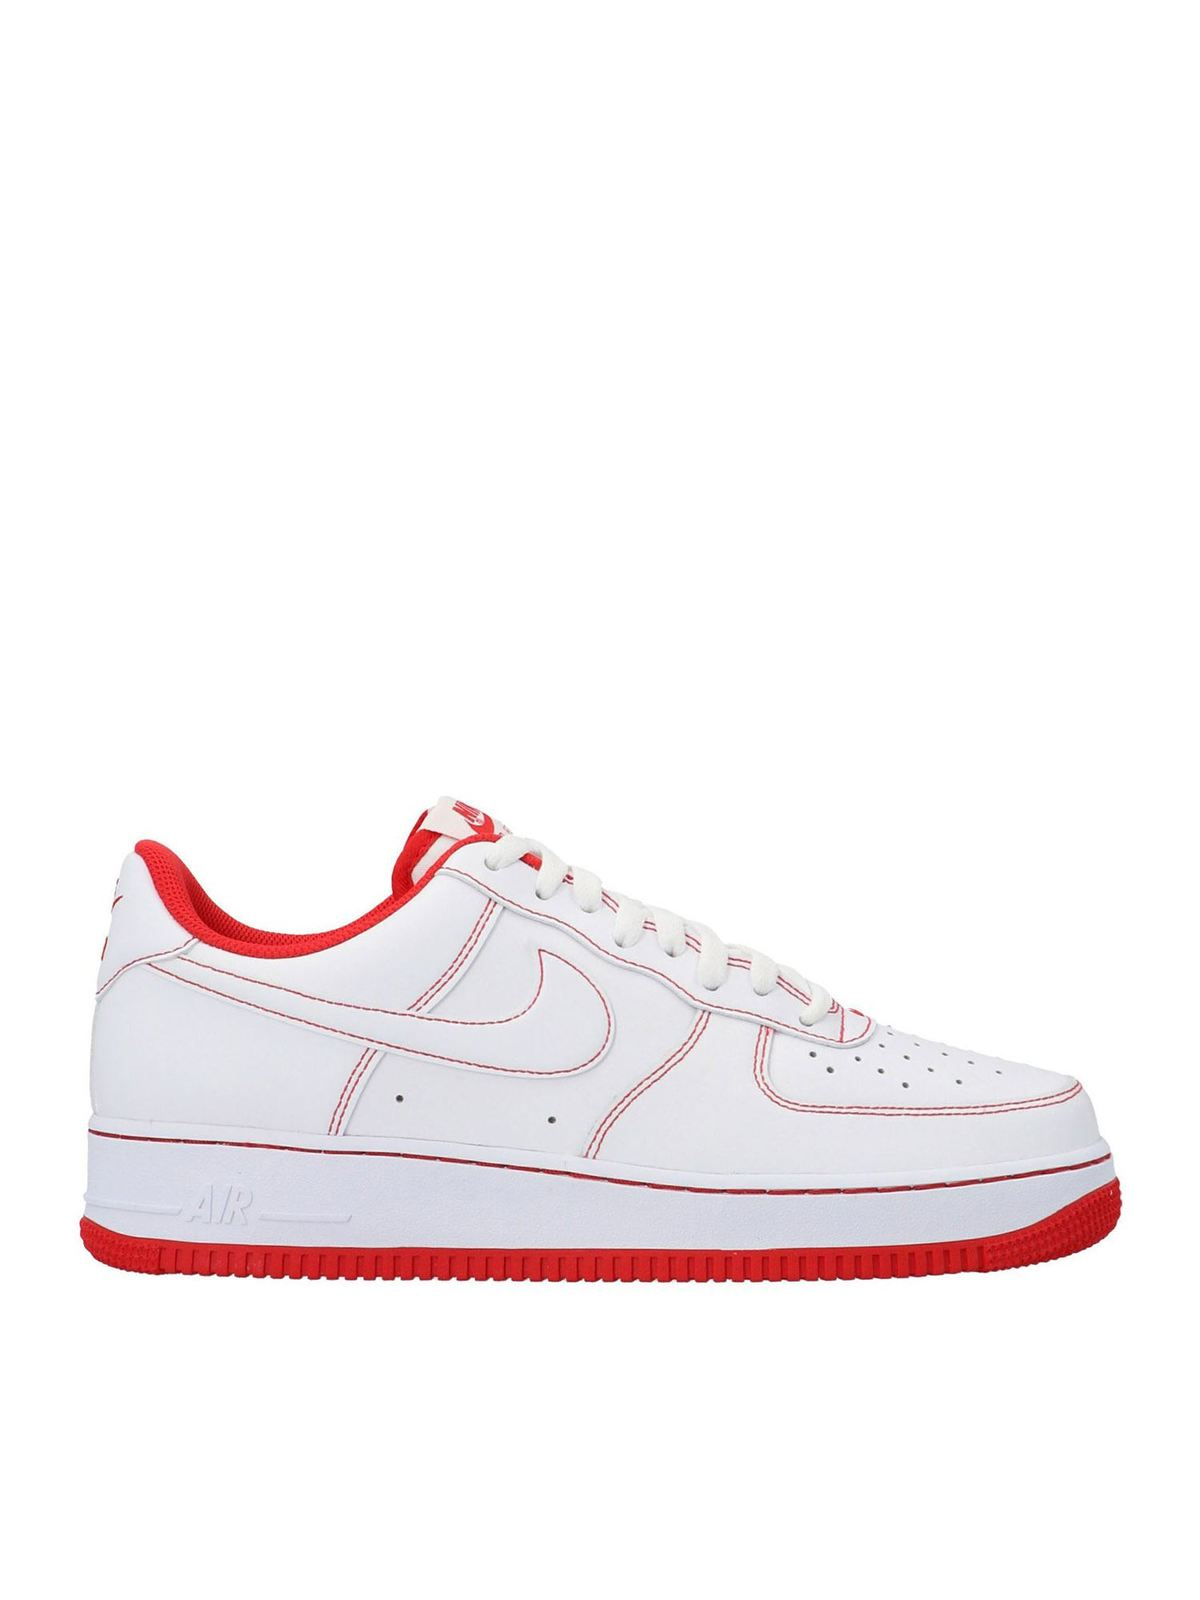 air force 1 bianche e rosse